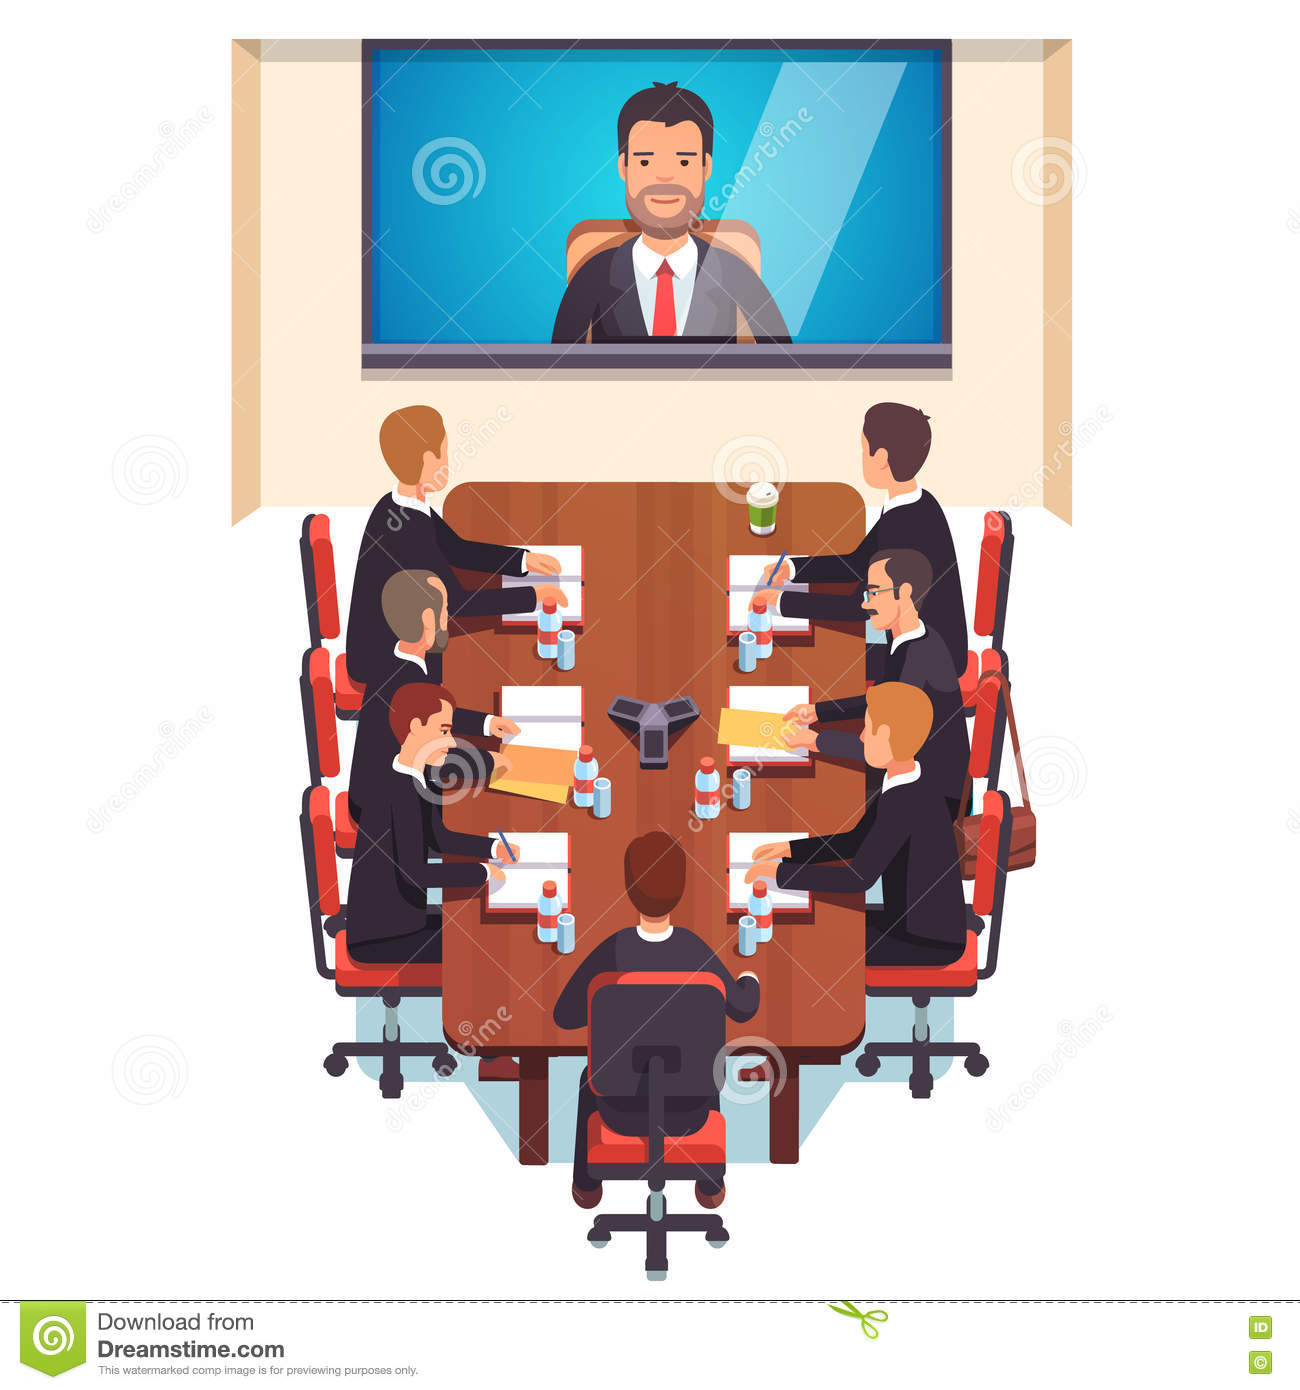 Corporation Directors Board Stock Vector - Illustration of ...